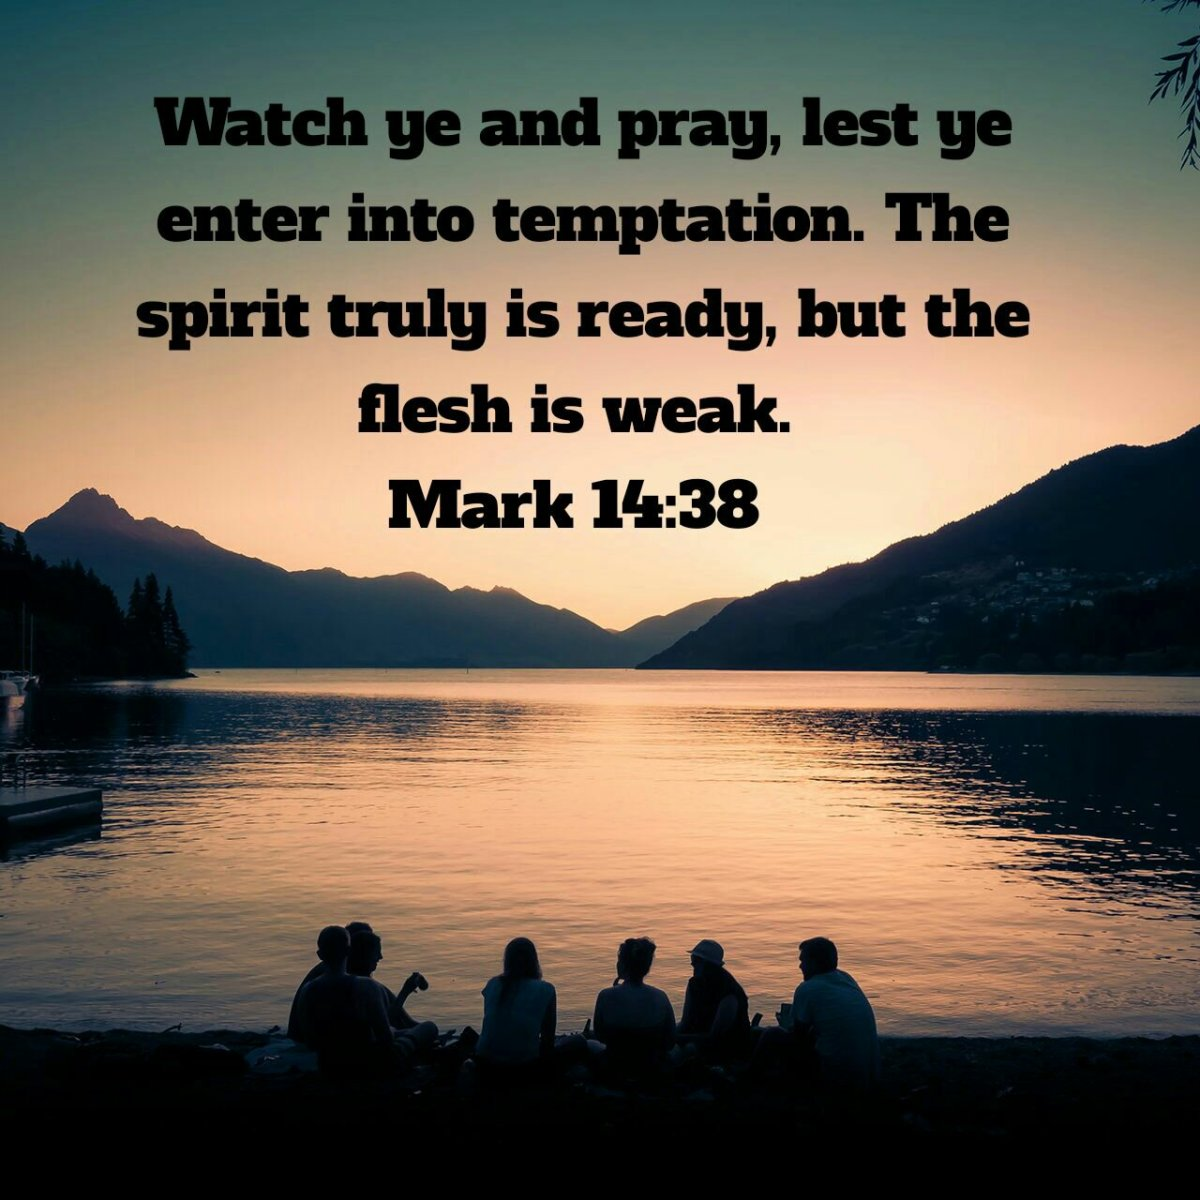 Be Watchful And Pray To Avoid Temptation